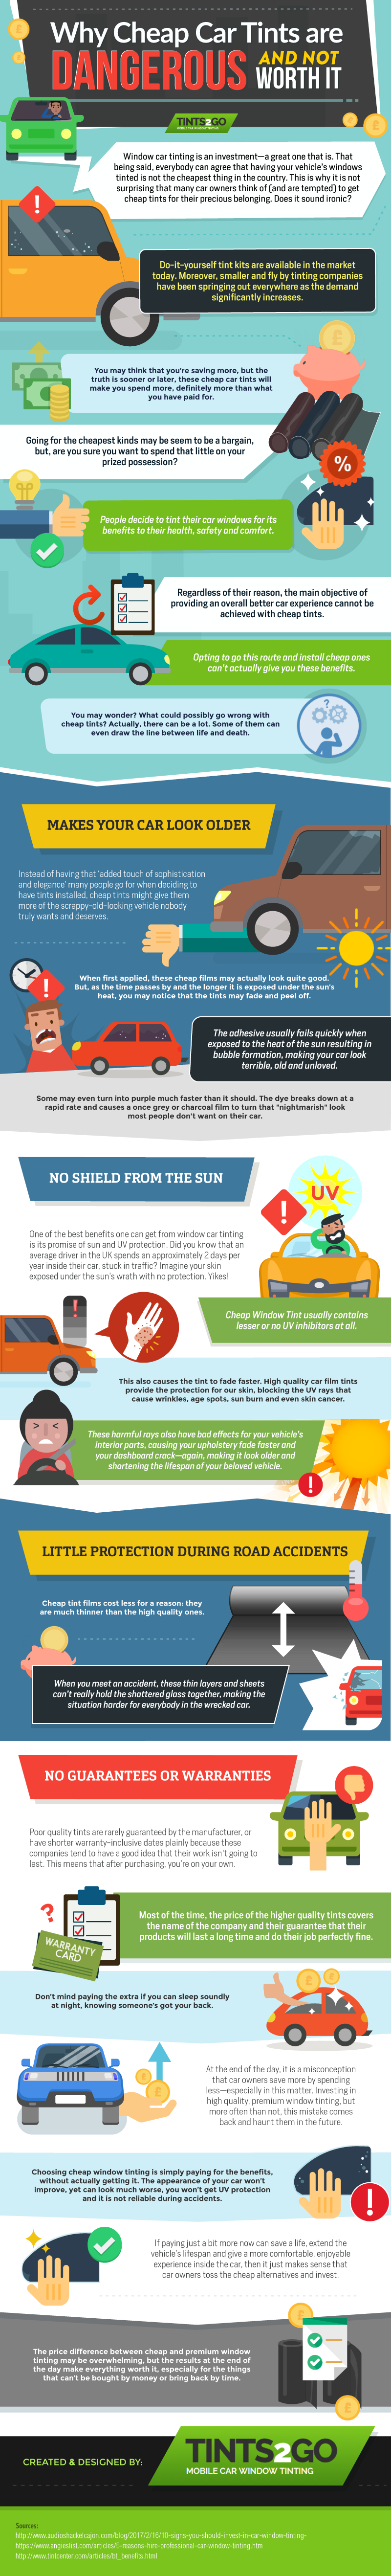 Why cheap car tints are dangerous and not worth it infographic why cheap car tints are dangerous and not worth it solutioingenieria Images